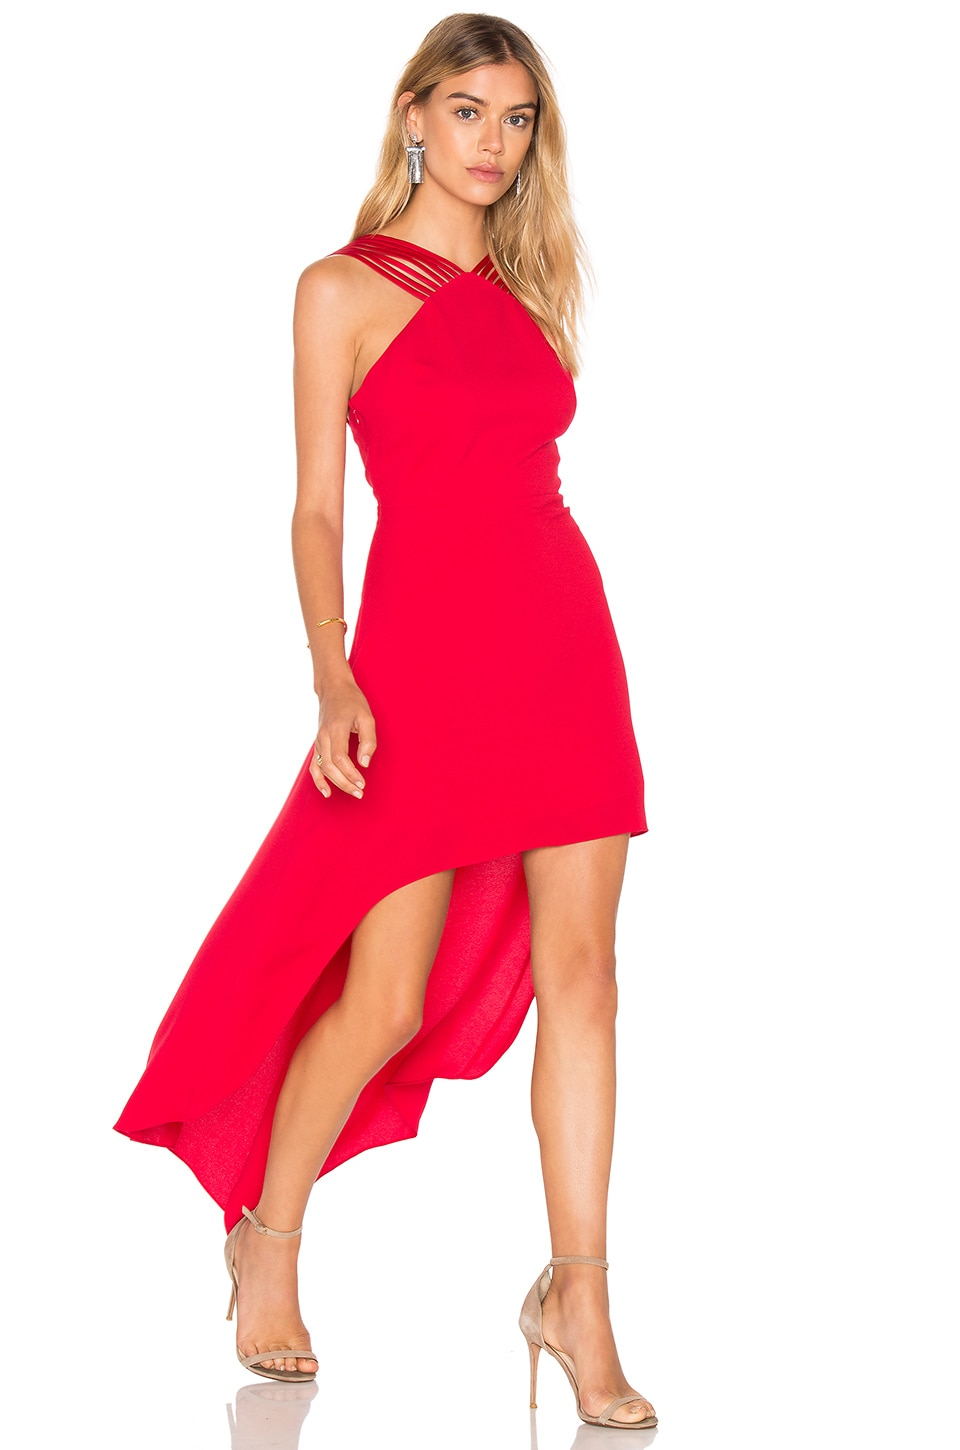 STRAPPY HALTER HI LO DRESS